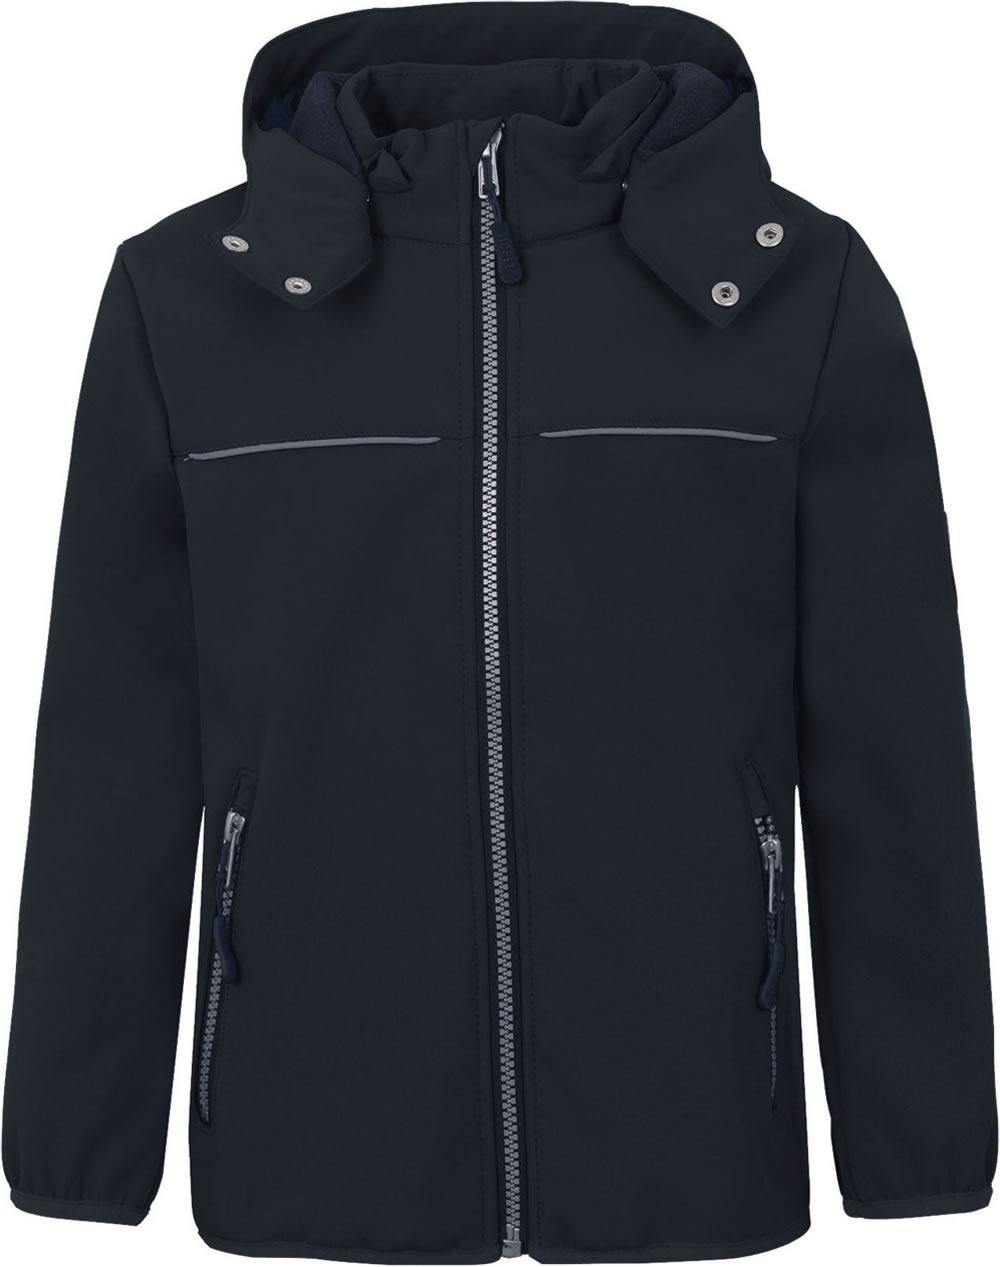 Softshell Veste Eclipse Heaven Alex Total To 6814759 3000 Ticket WYHED29I